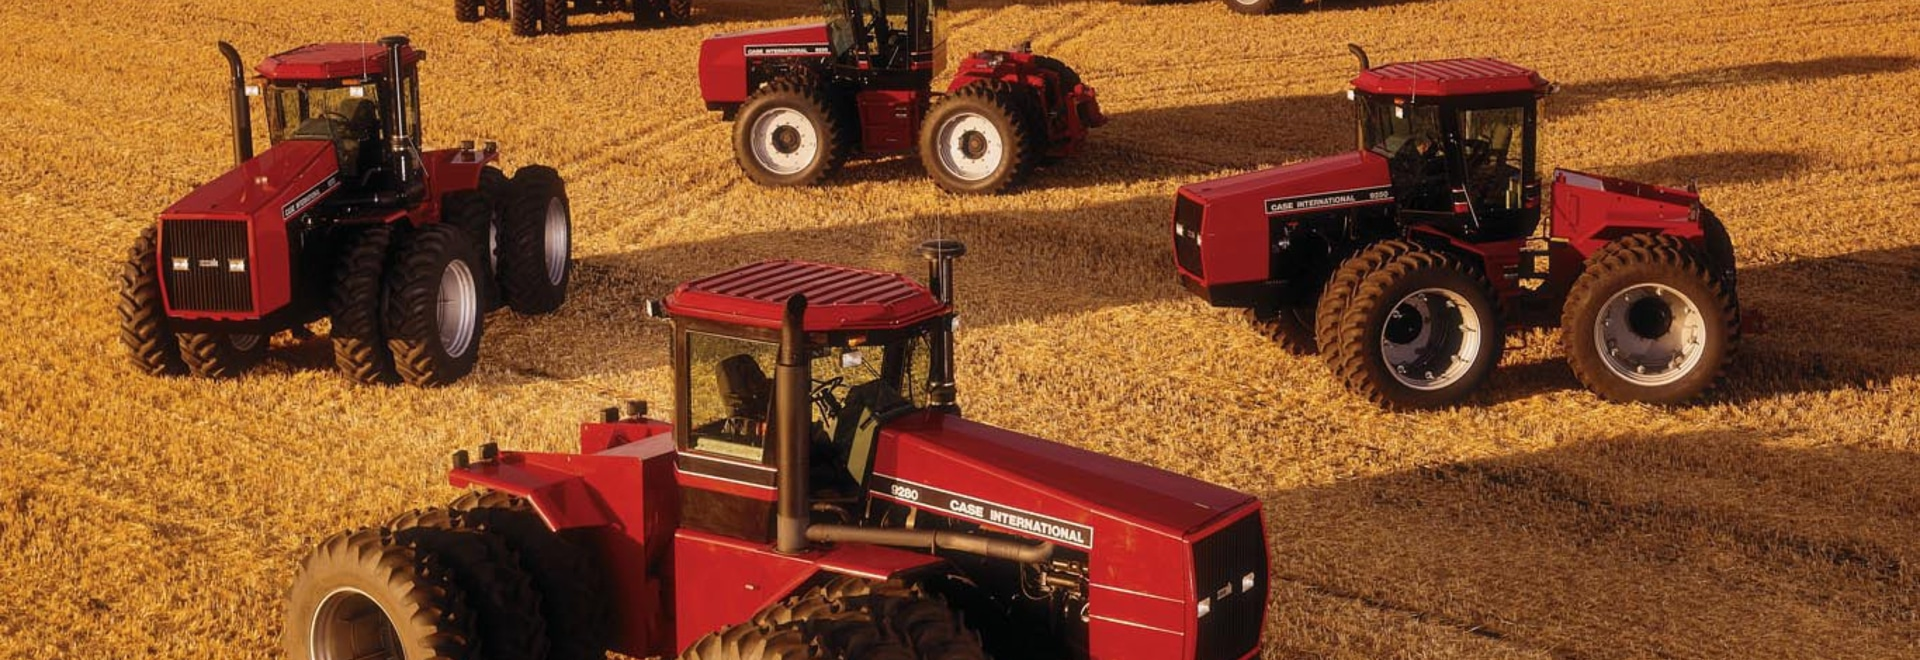 Steiger family's induction into Agricultural Equipment Manufacturers' Hall of Fame